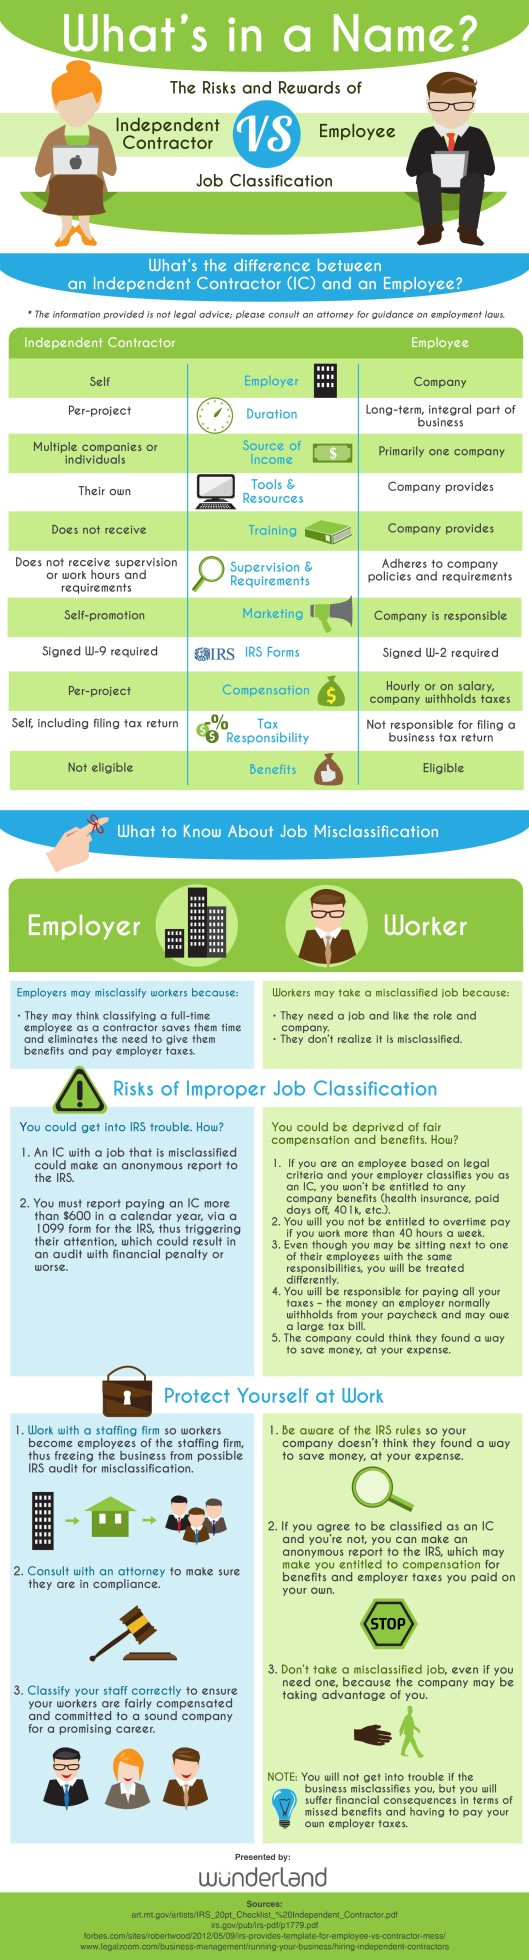 Contractor-vs-Employee-Risks-and-Rewards-Infographic